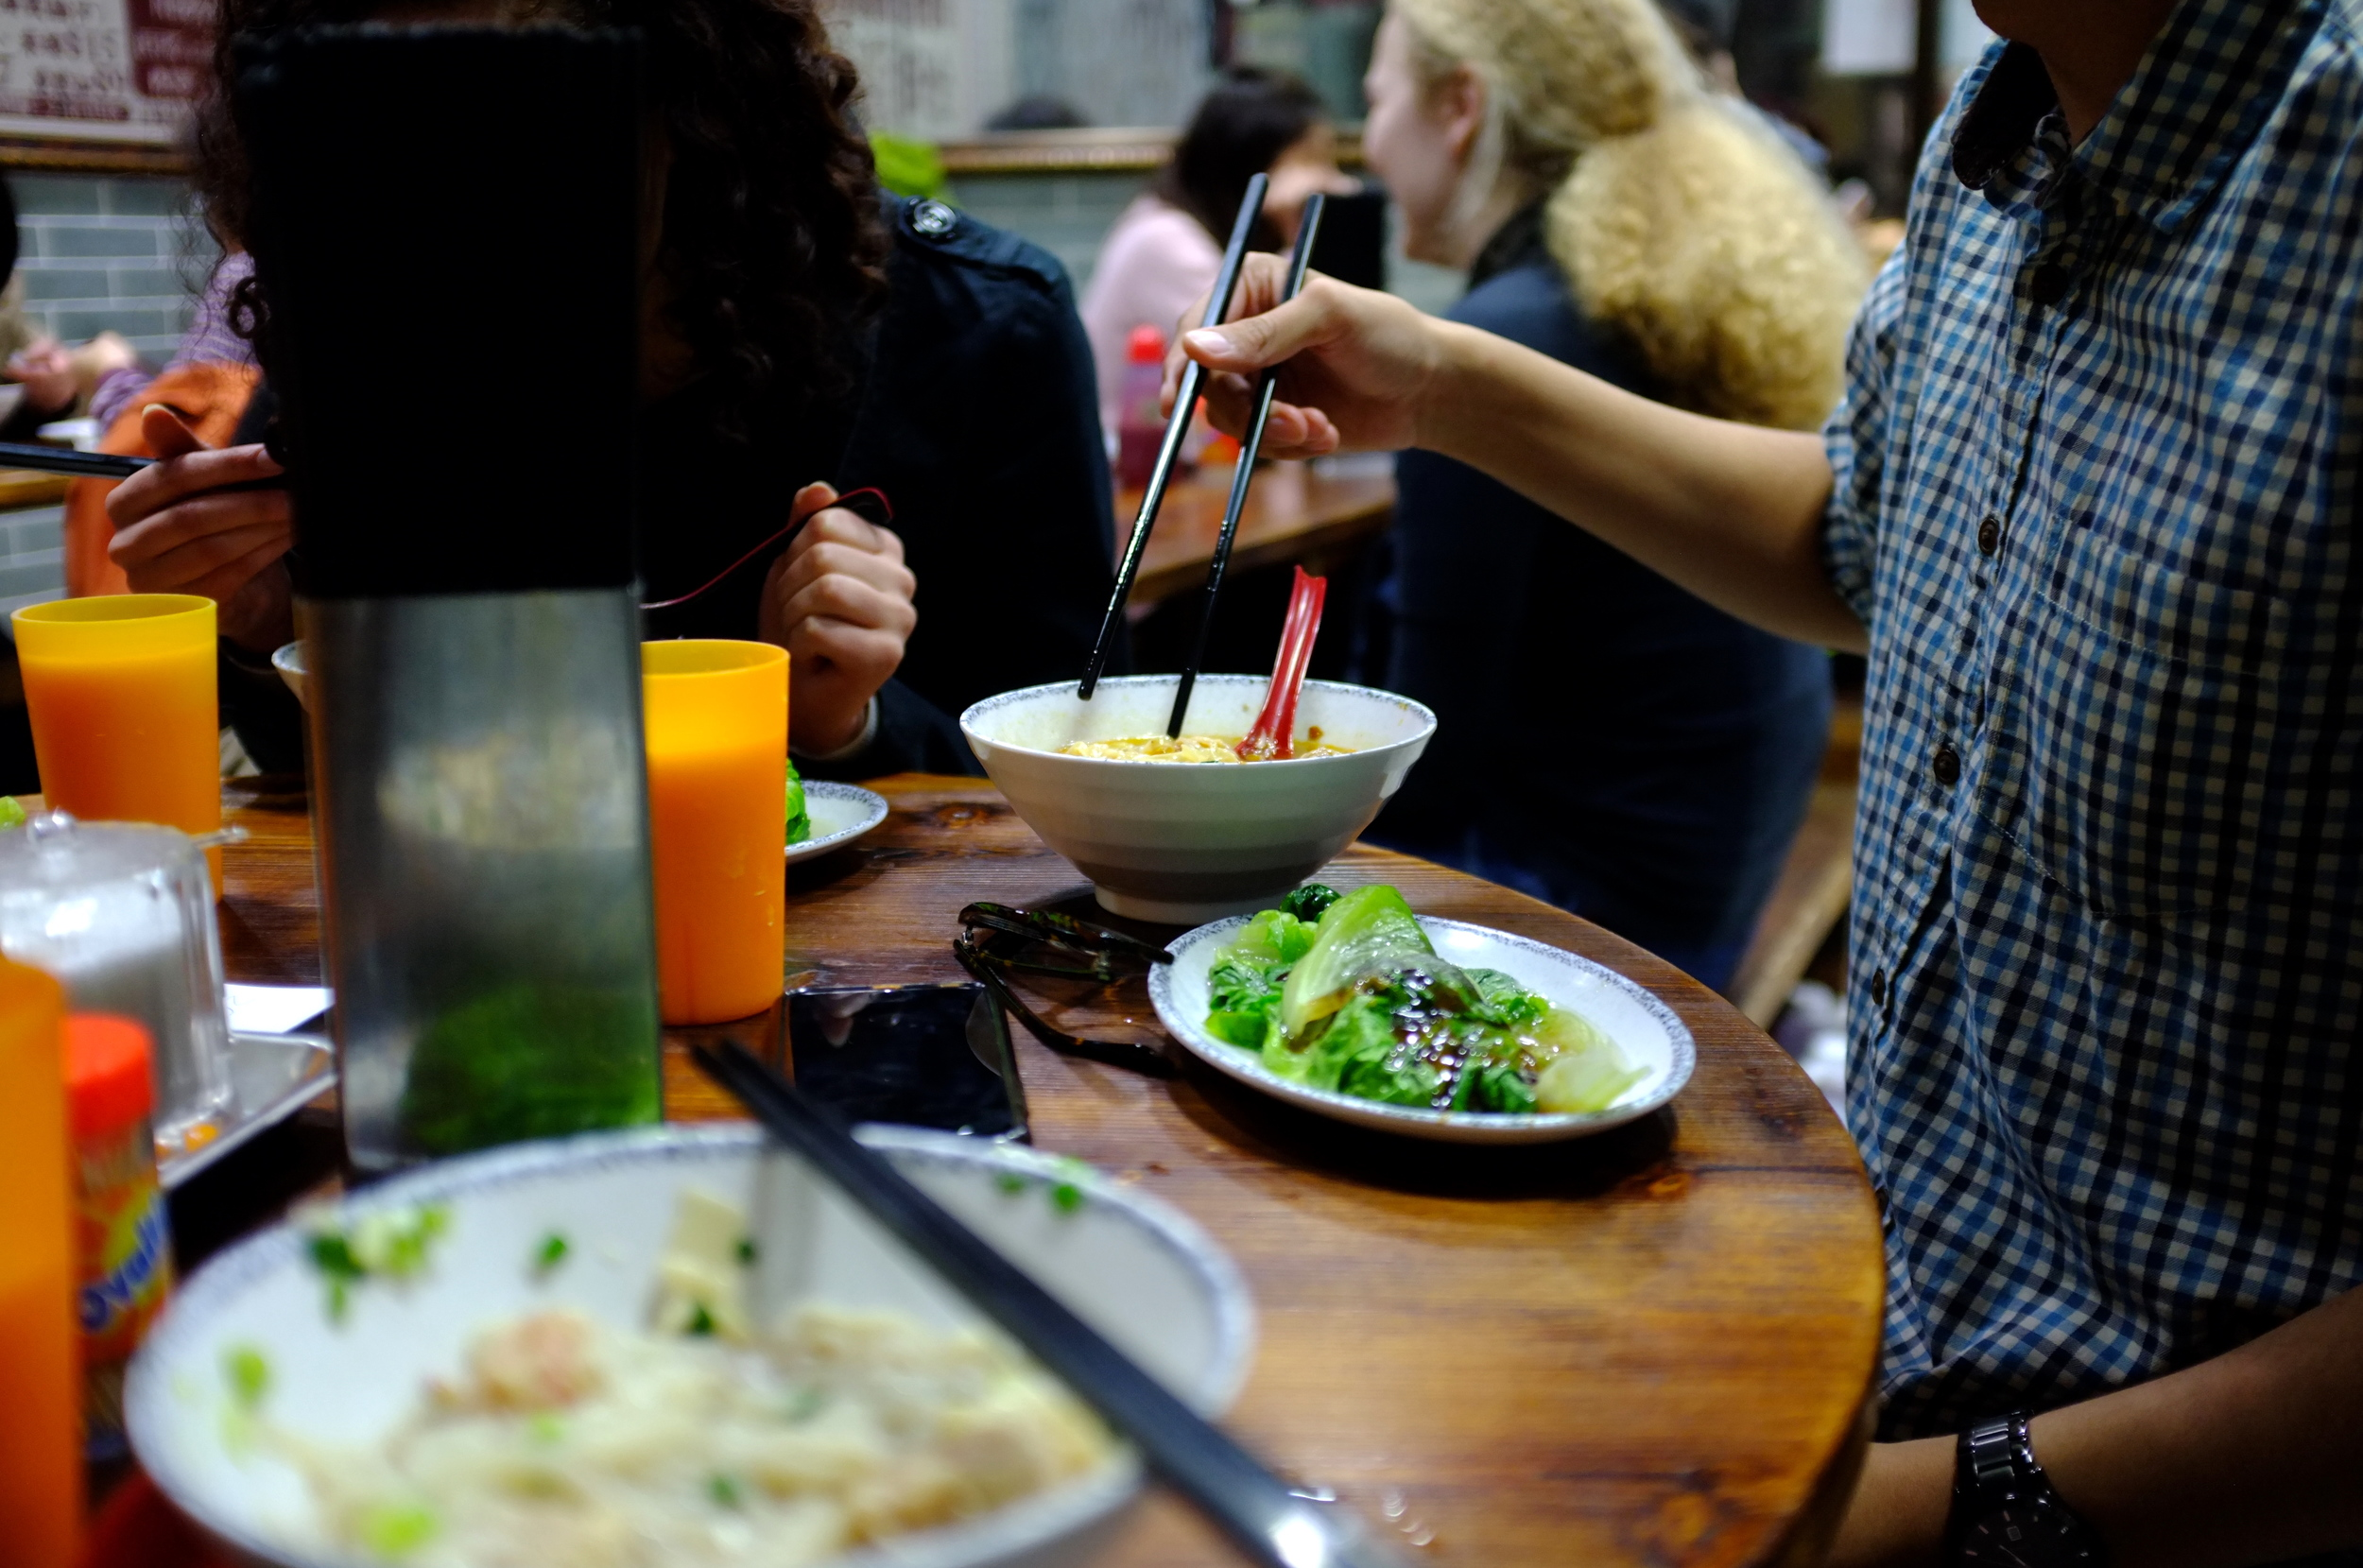 Dinner at a hole-in-the-wall in Causeway Bay